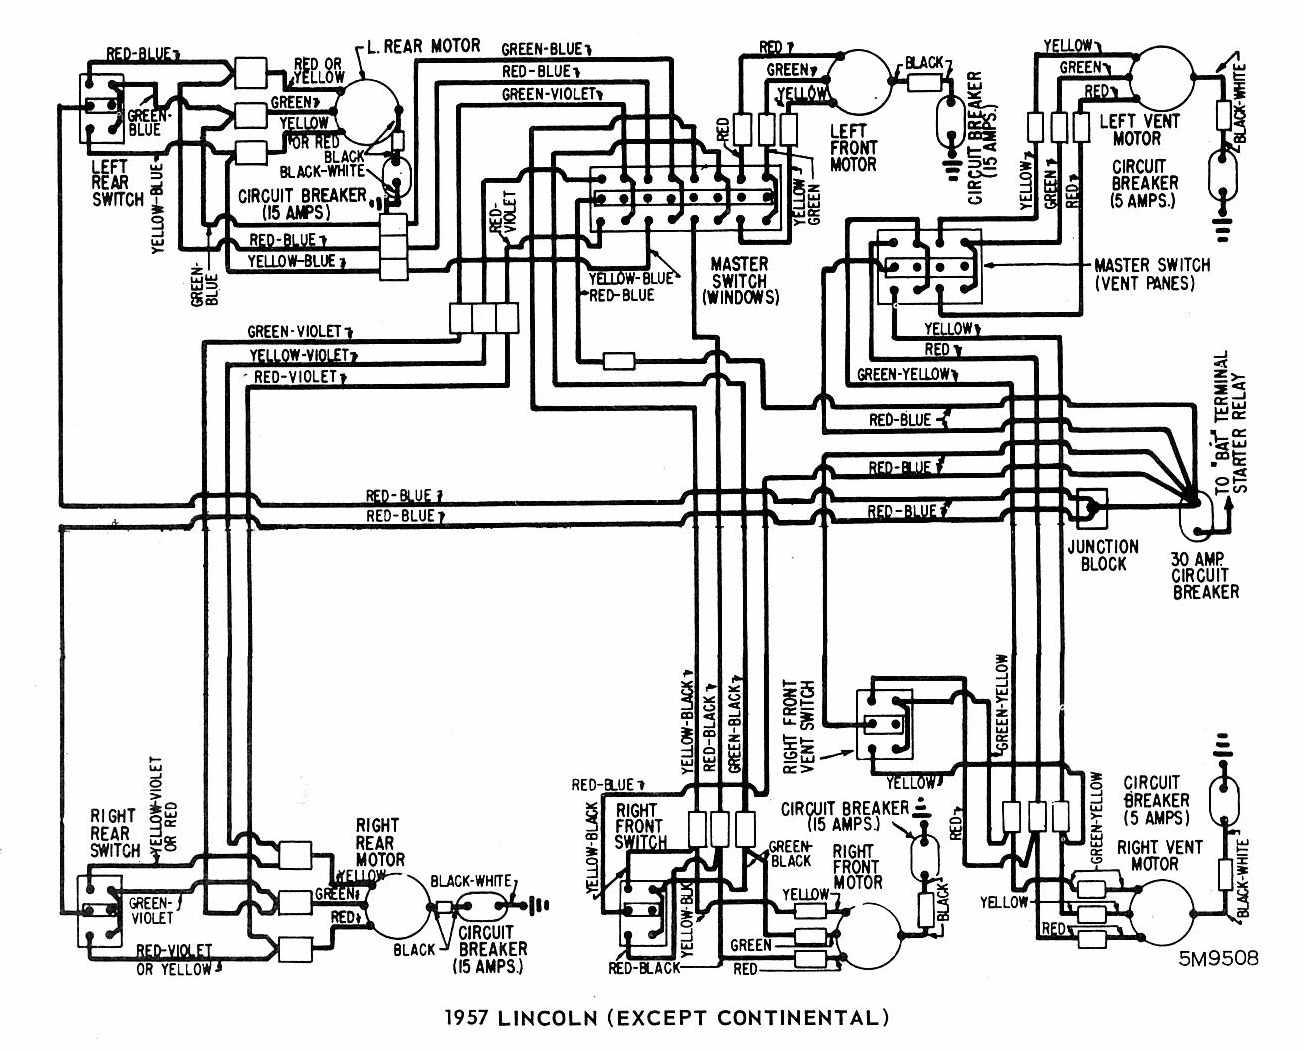 Lincoln (Except Continental) 1957 Windows Wiring Diagram